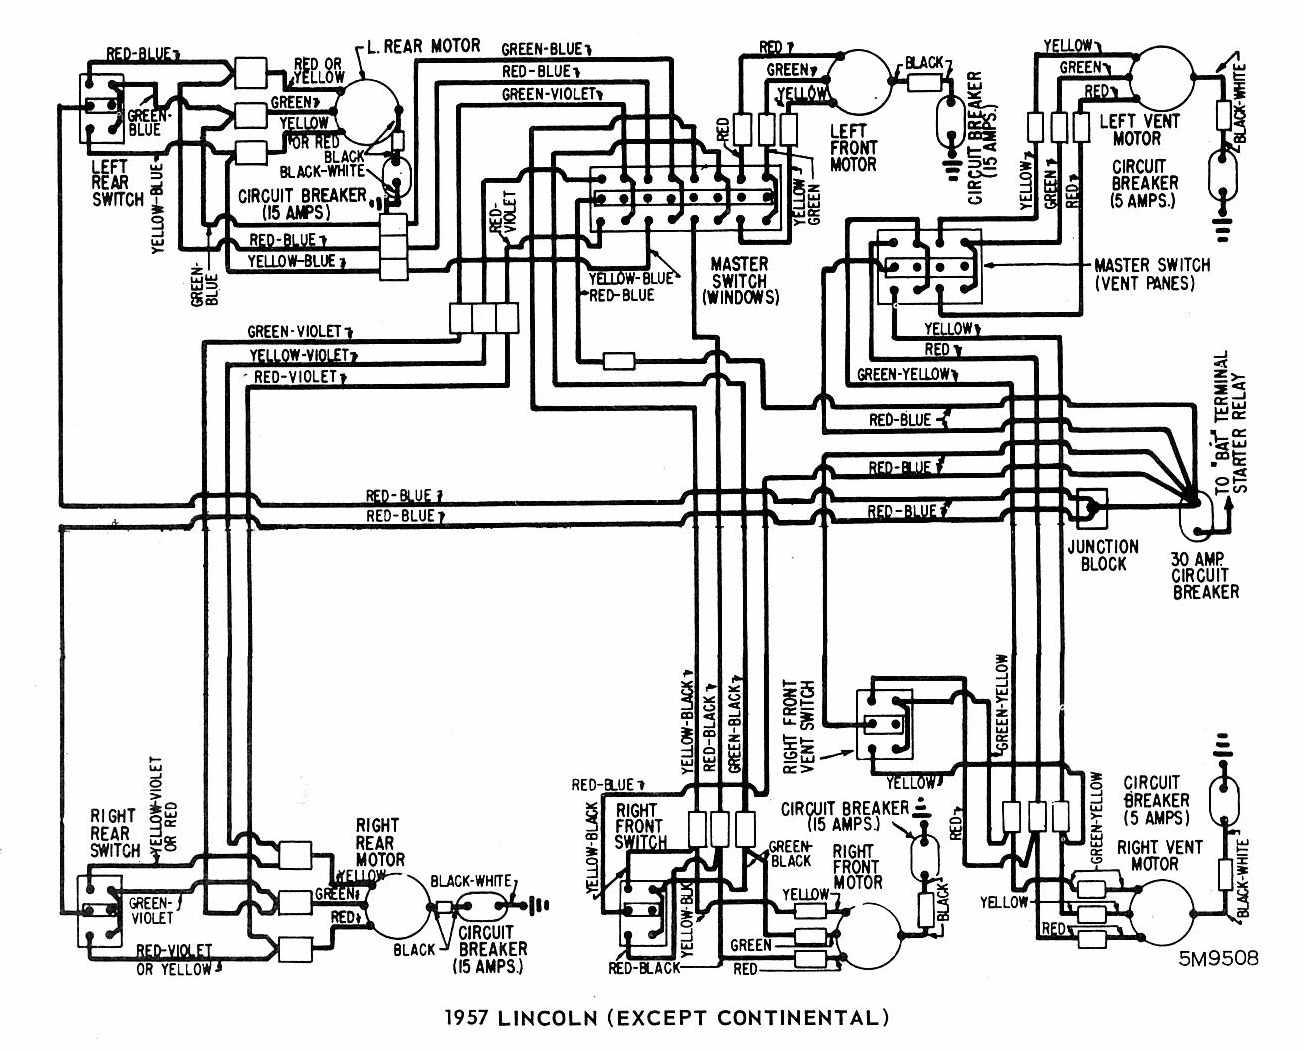 Lincoln (Except Continental) 1957 Windows Wiring Diagram